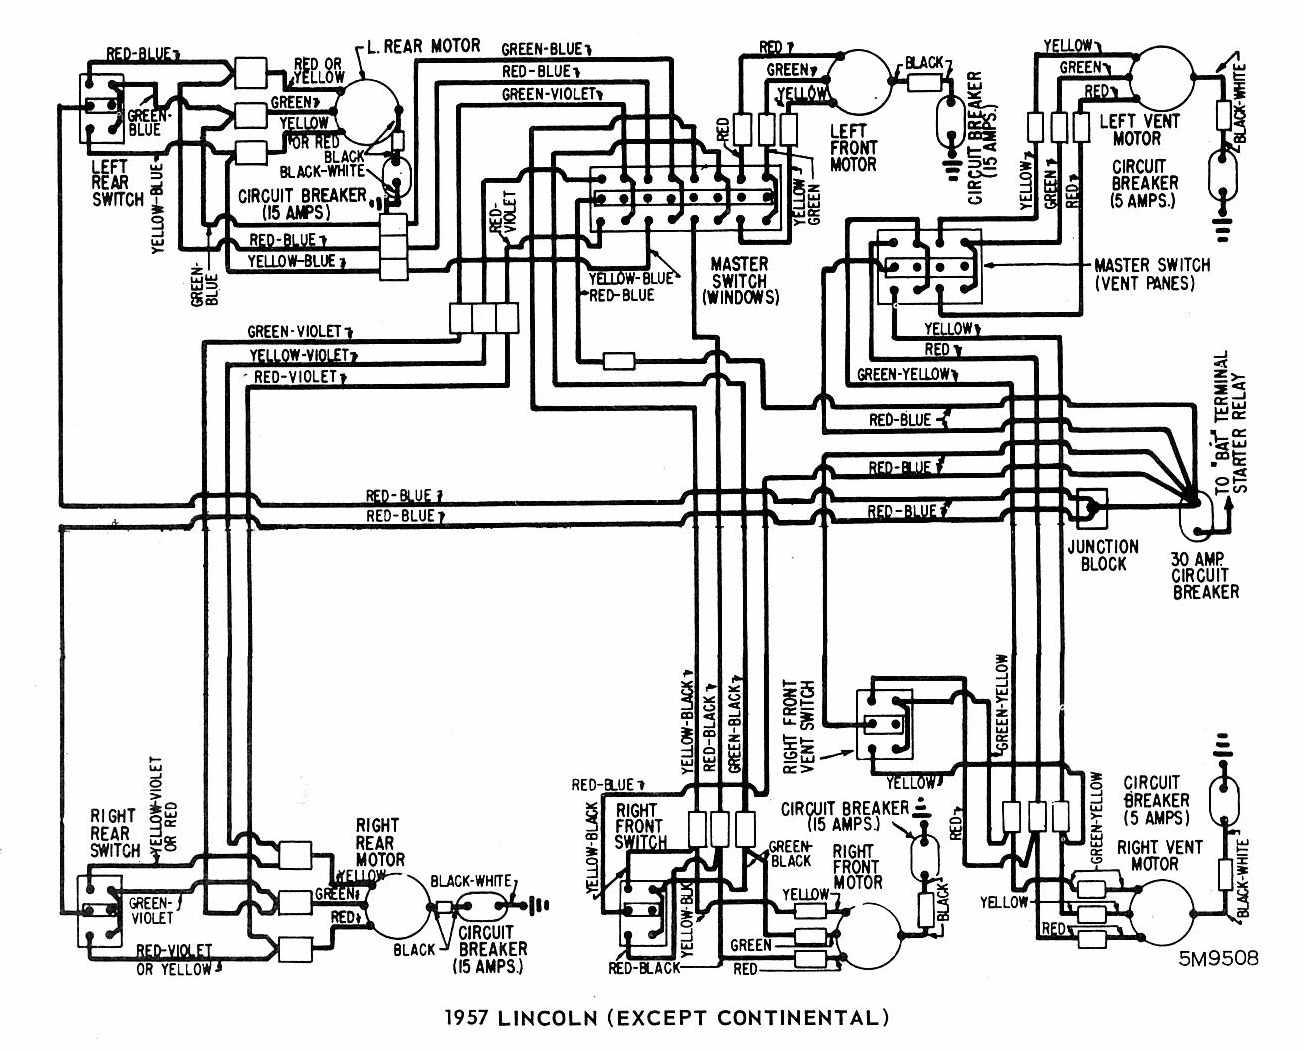 Lincoln (Except Continental) 1957 Windows Wiring Diagram